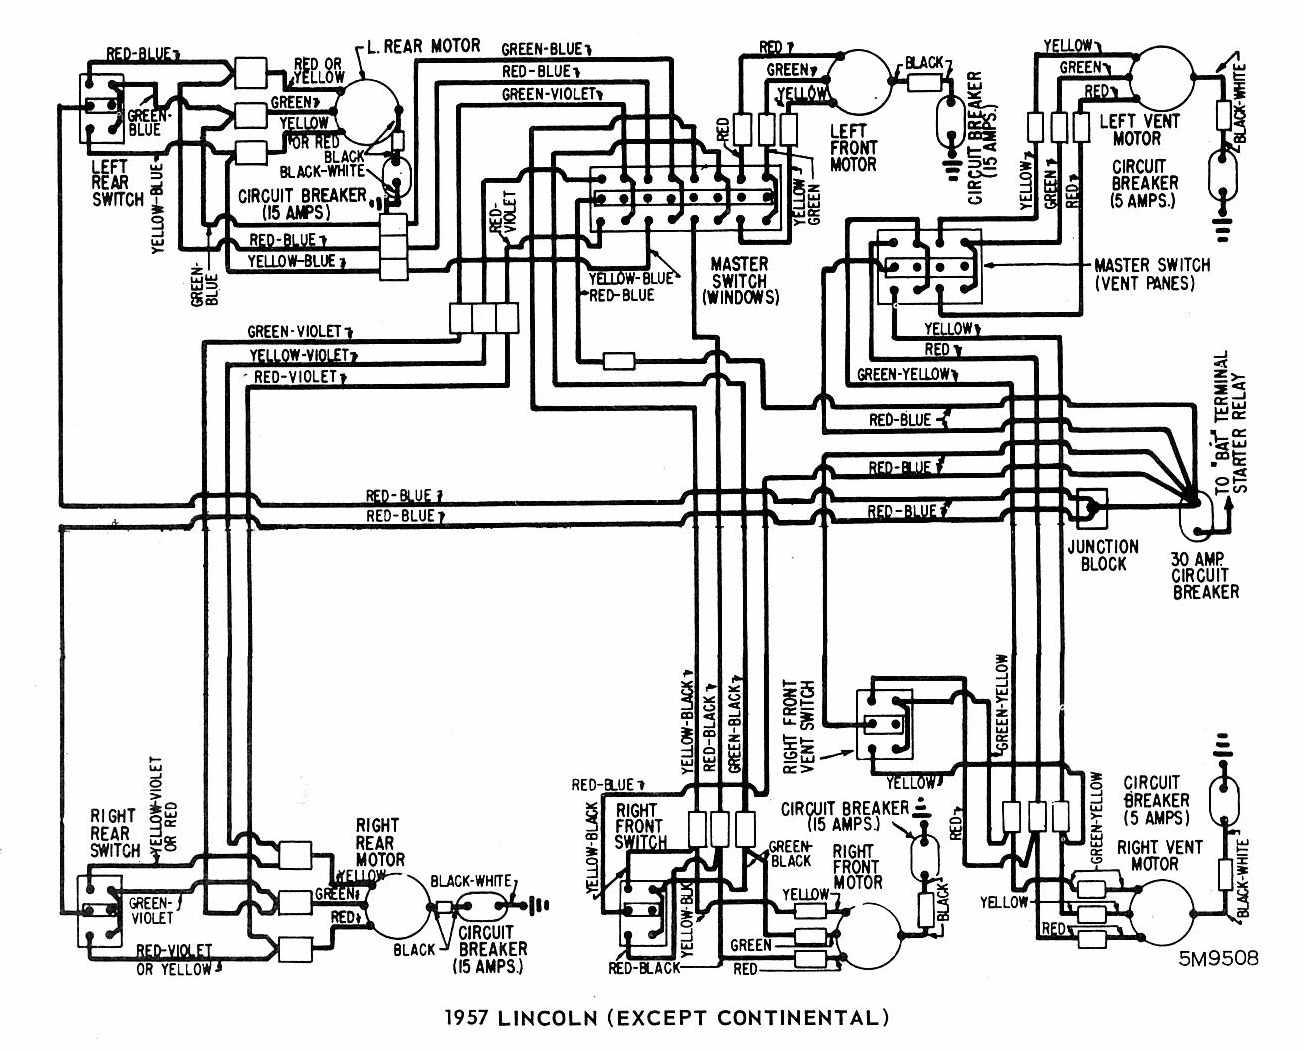 Lincoln (Except Continental) 1957 Windows Wiring Diagram